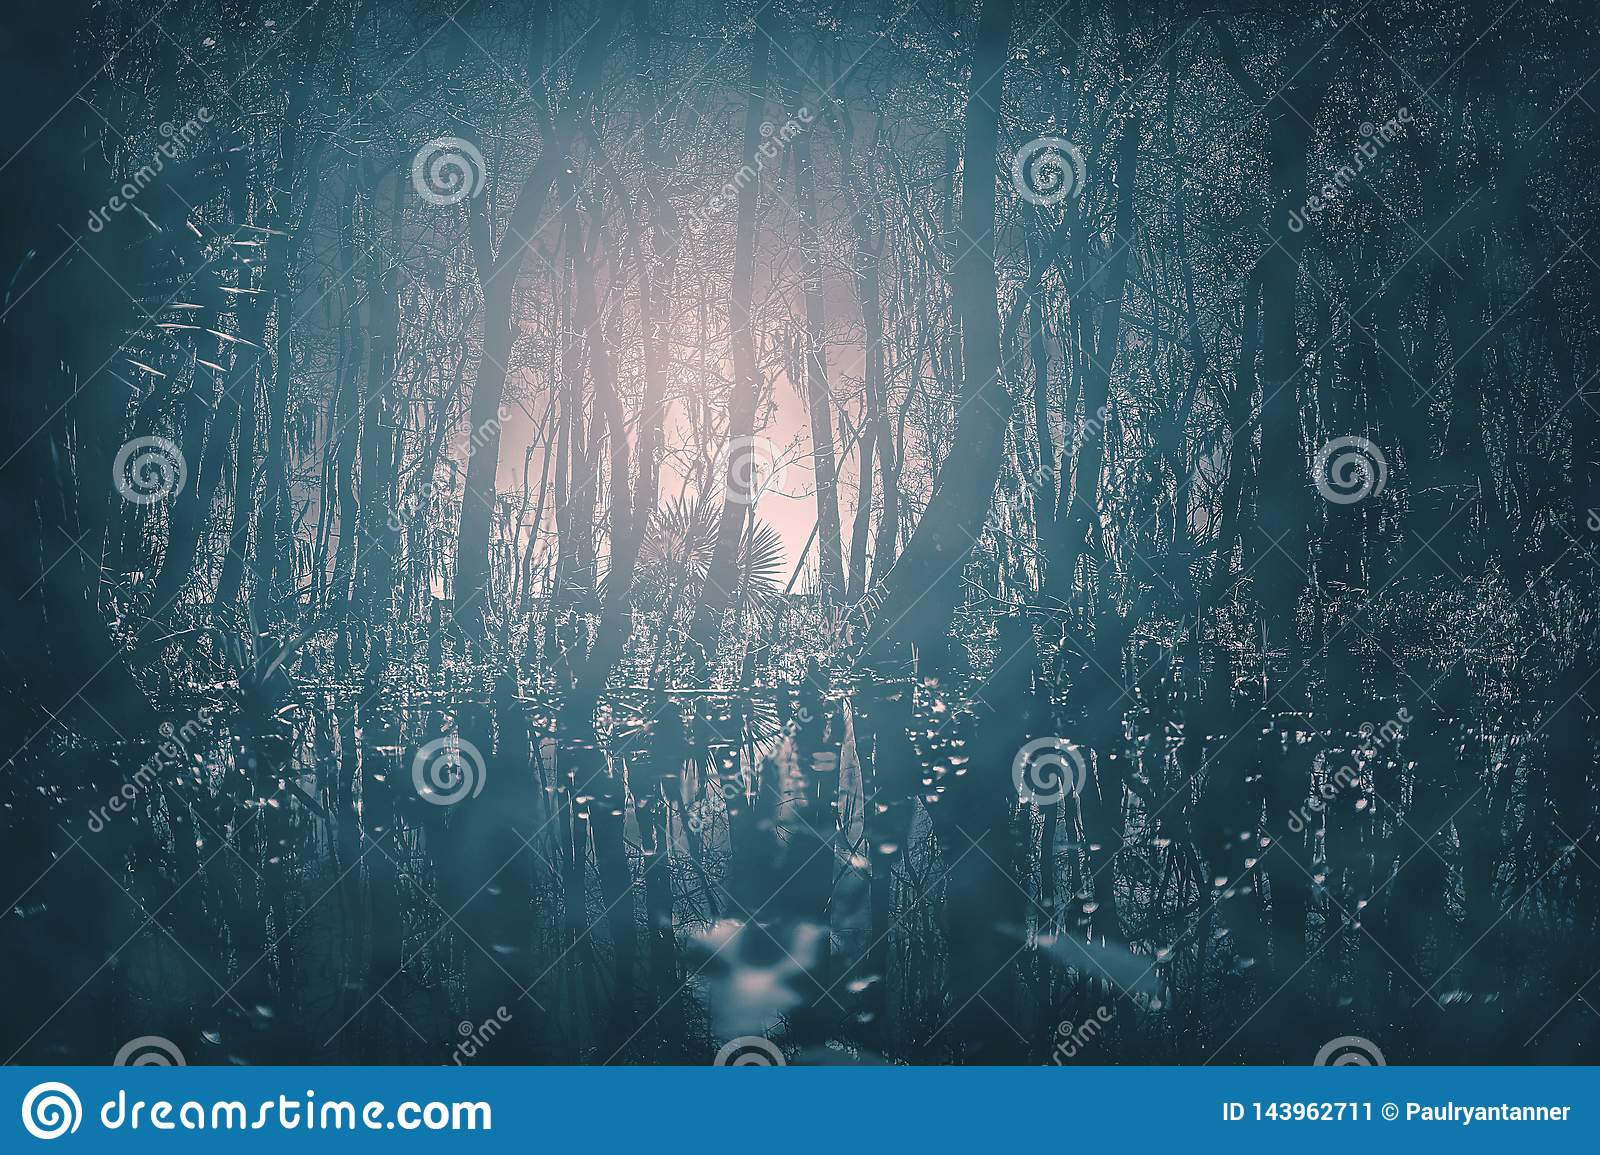 A creepy Gothic moonlit foggy woods at night. Great for horror, Gothic, Creepy, and scary projects.